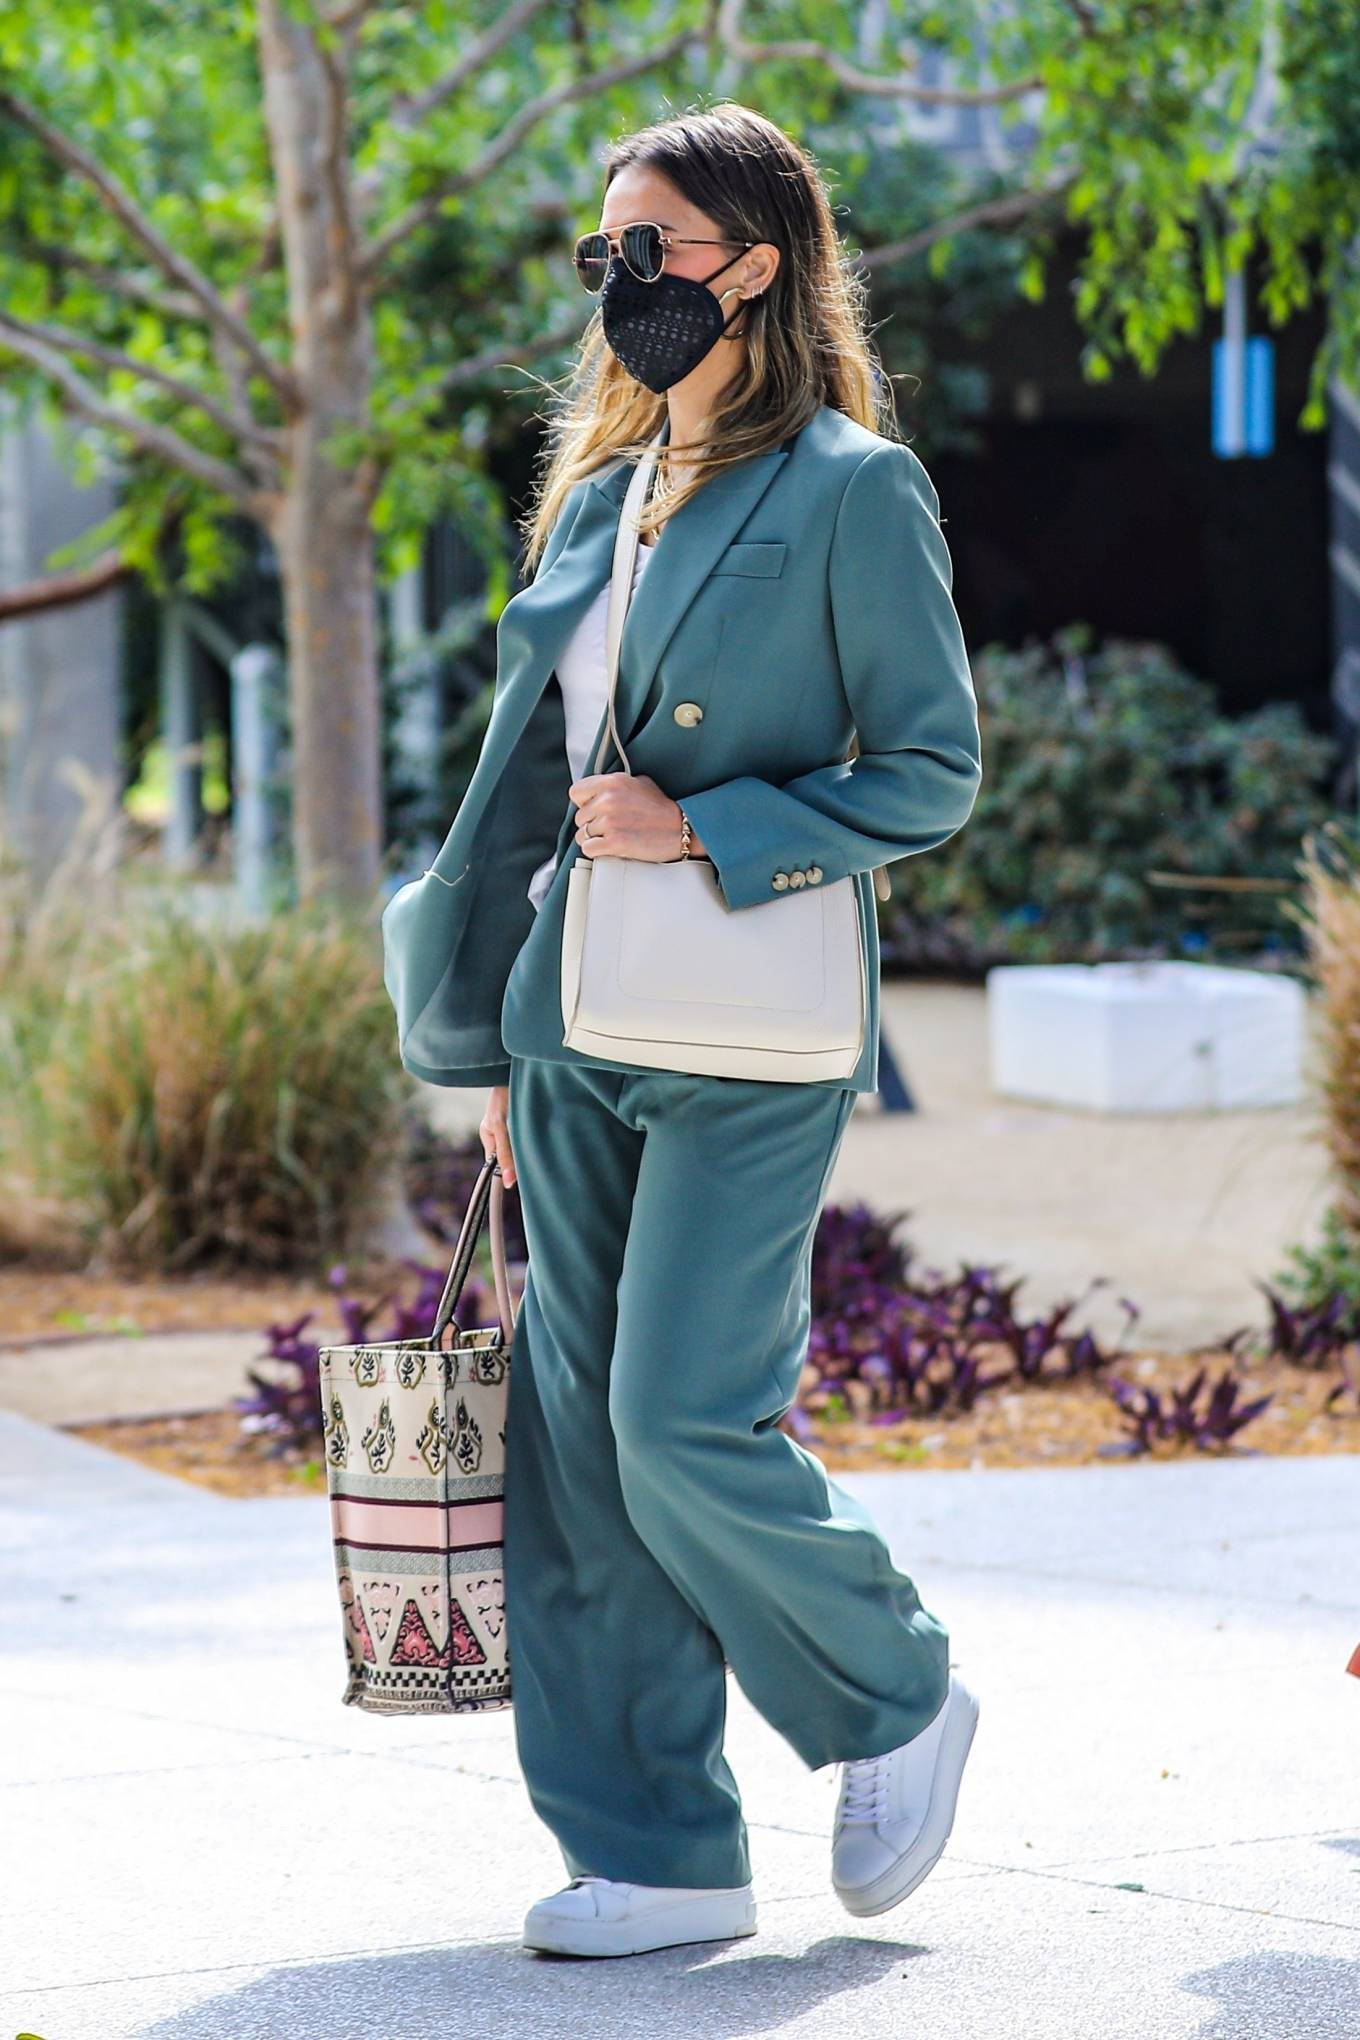 Jessica Alba 2021 : Jessica Alba – Out in a classy suit in Playa Vista-44